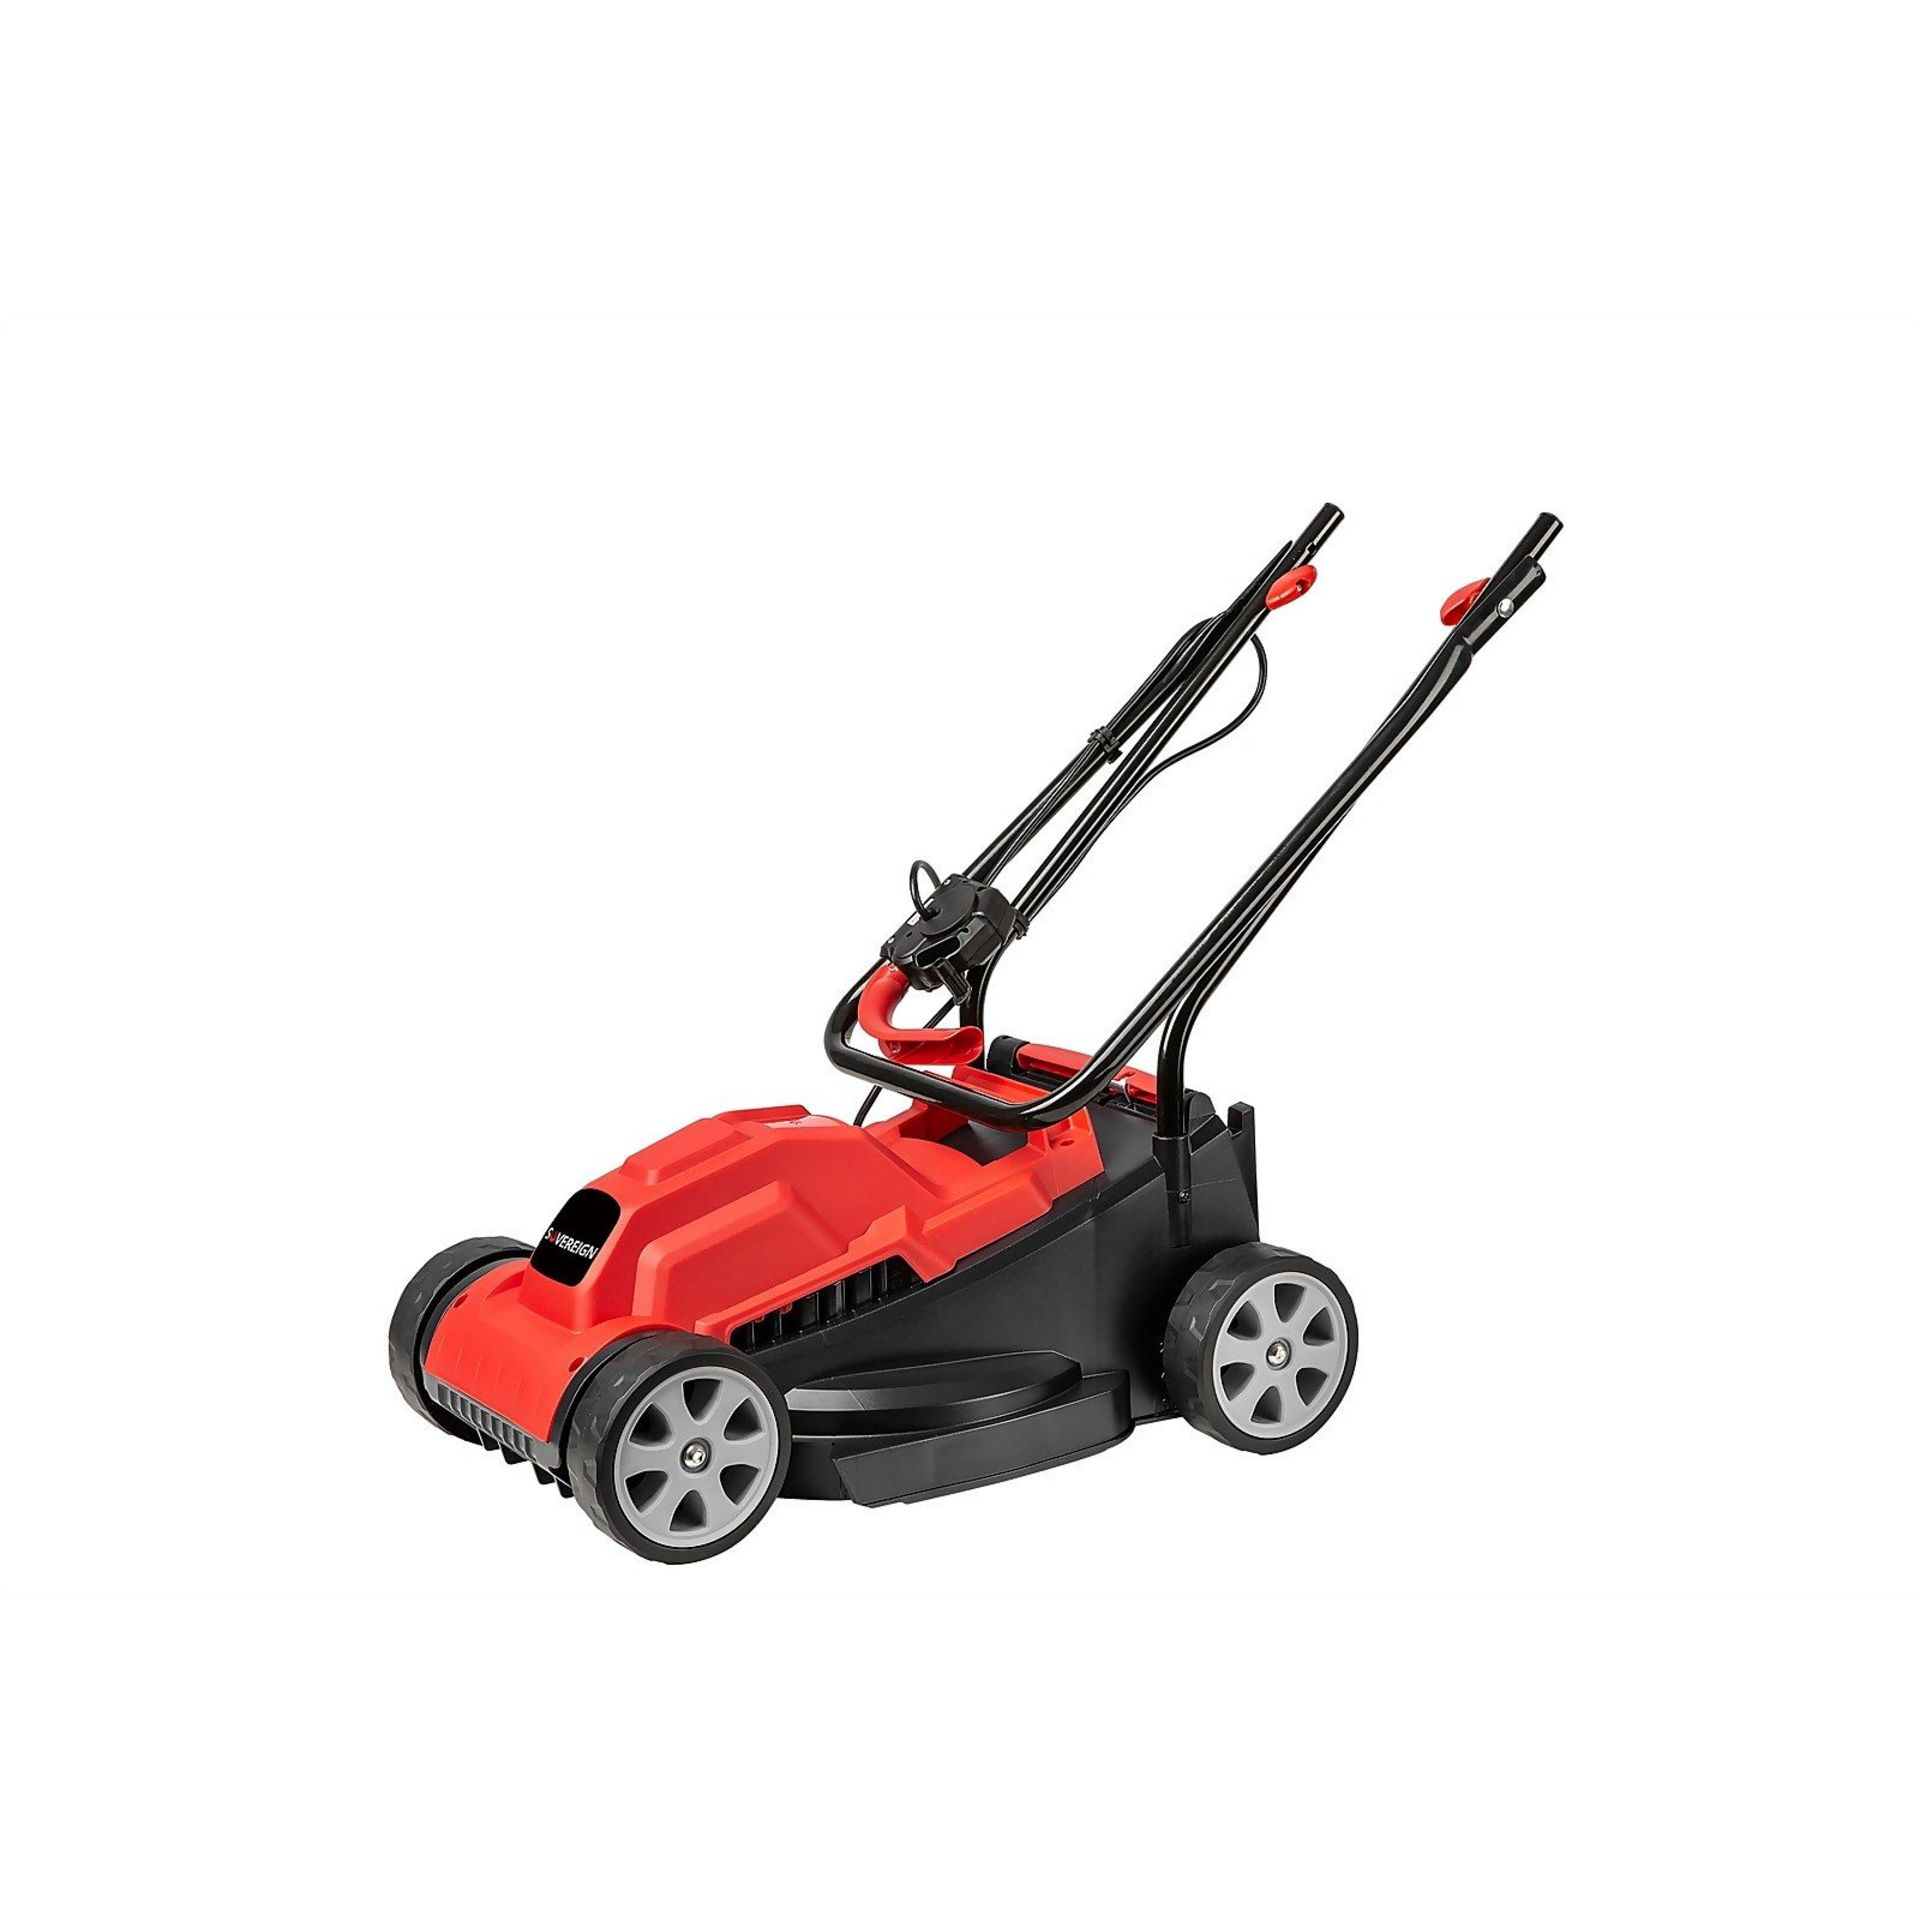 (P6) 1x Sovereign 32cm 1200W Electric Rotary Lawn Mower RRP £50. New, Sealed Unit, With Box Damage. - Image 2 of 4